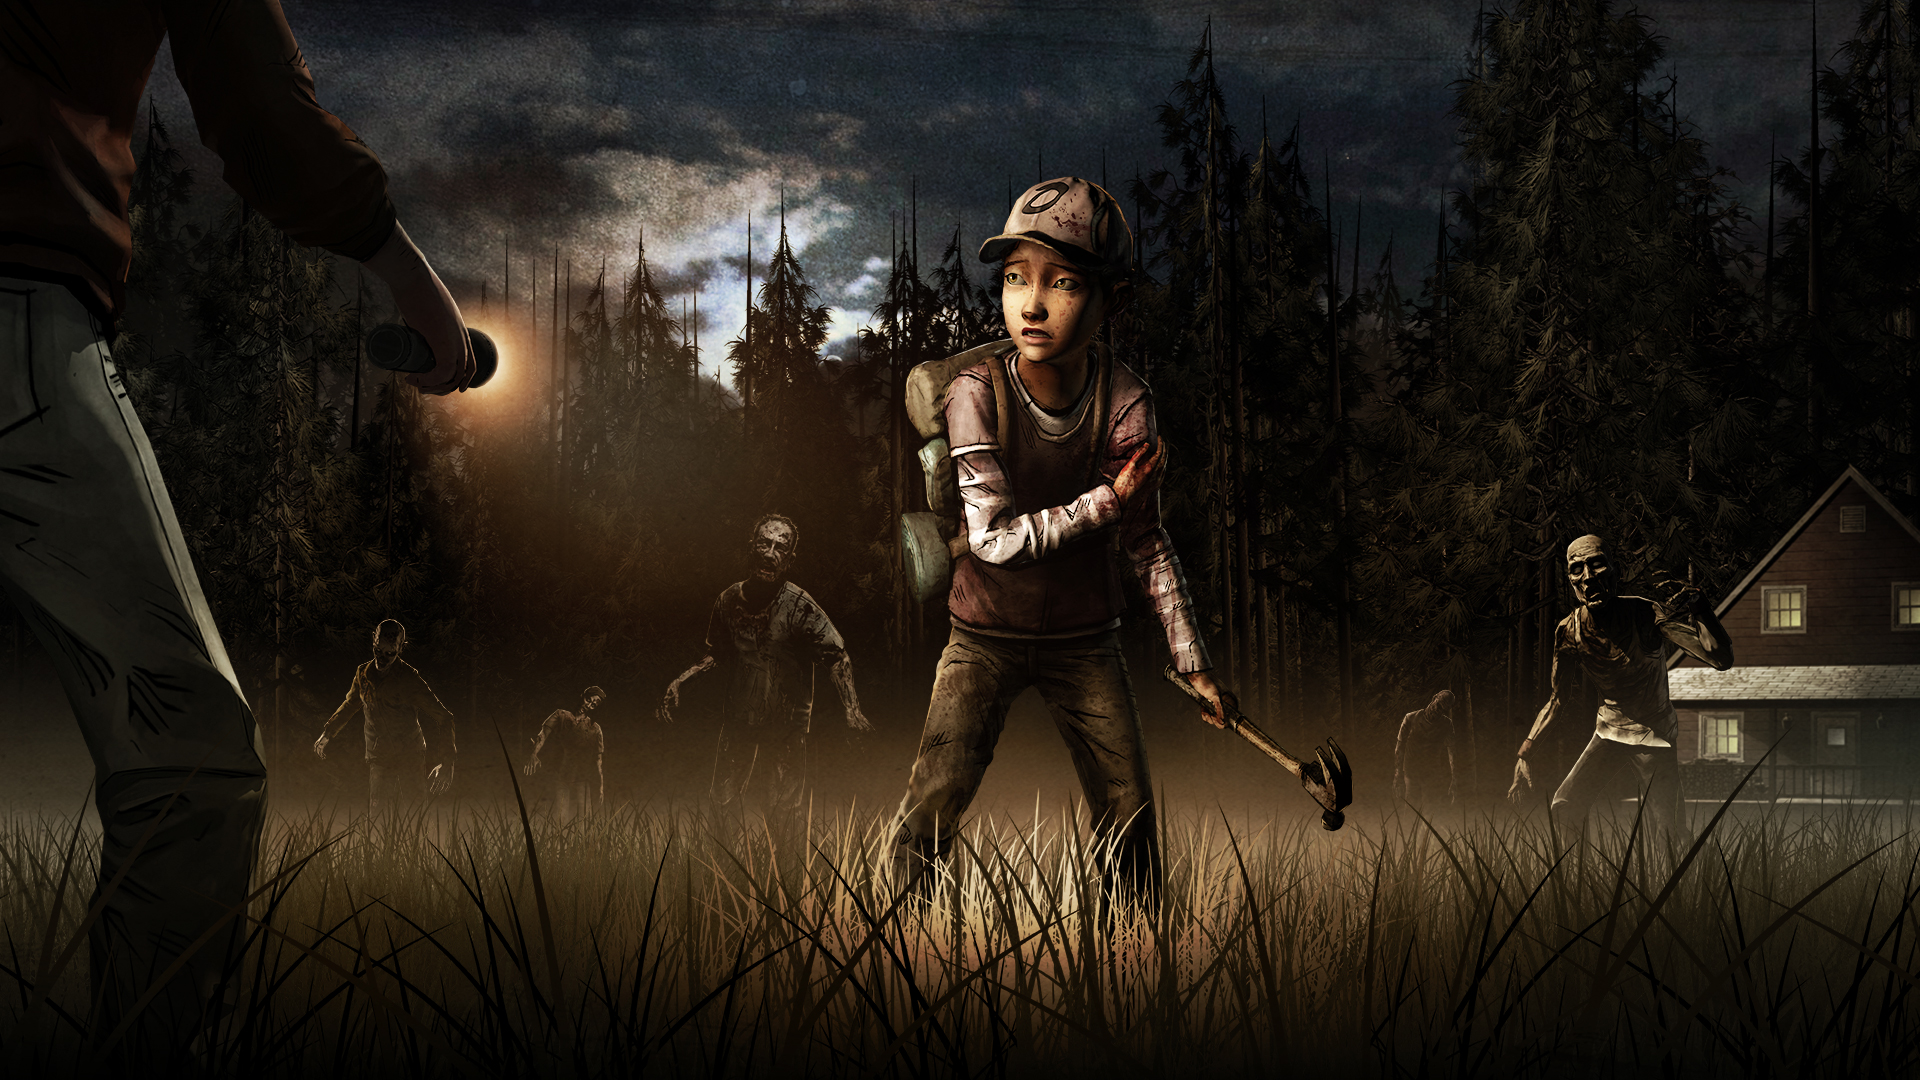 The Walking Dead Season 3 Confirms Returning Character, Connection To Comics 2360176 wds2 keyart 1920x1080 nologo 1